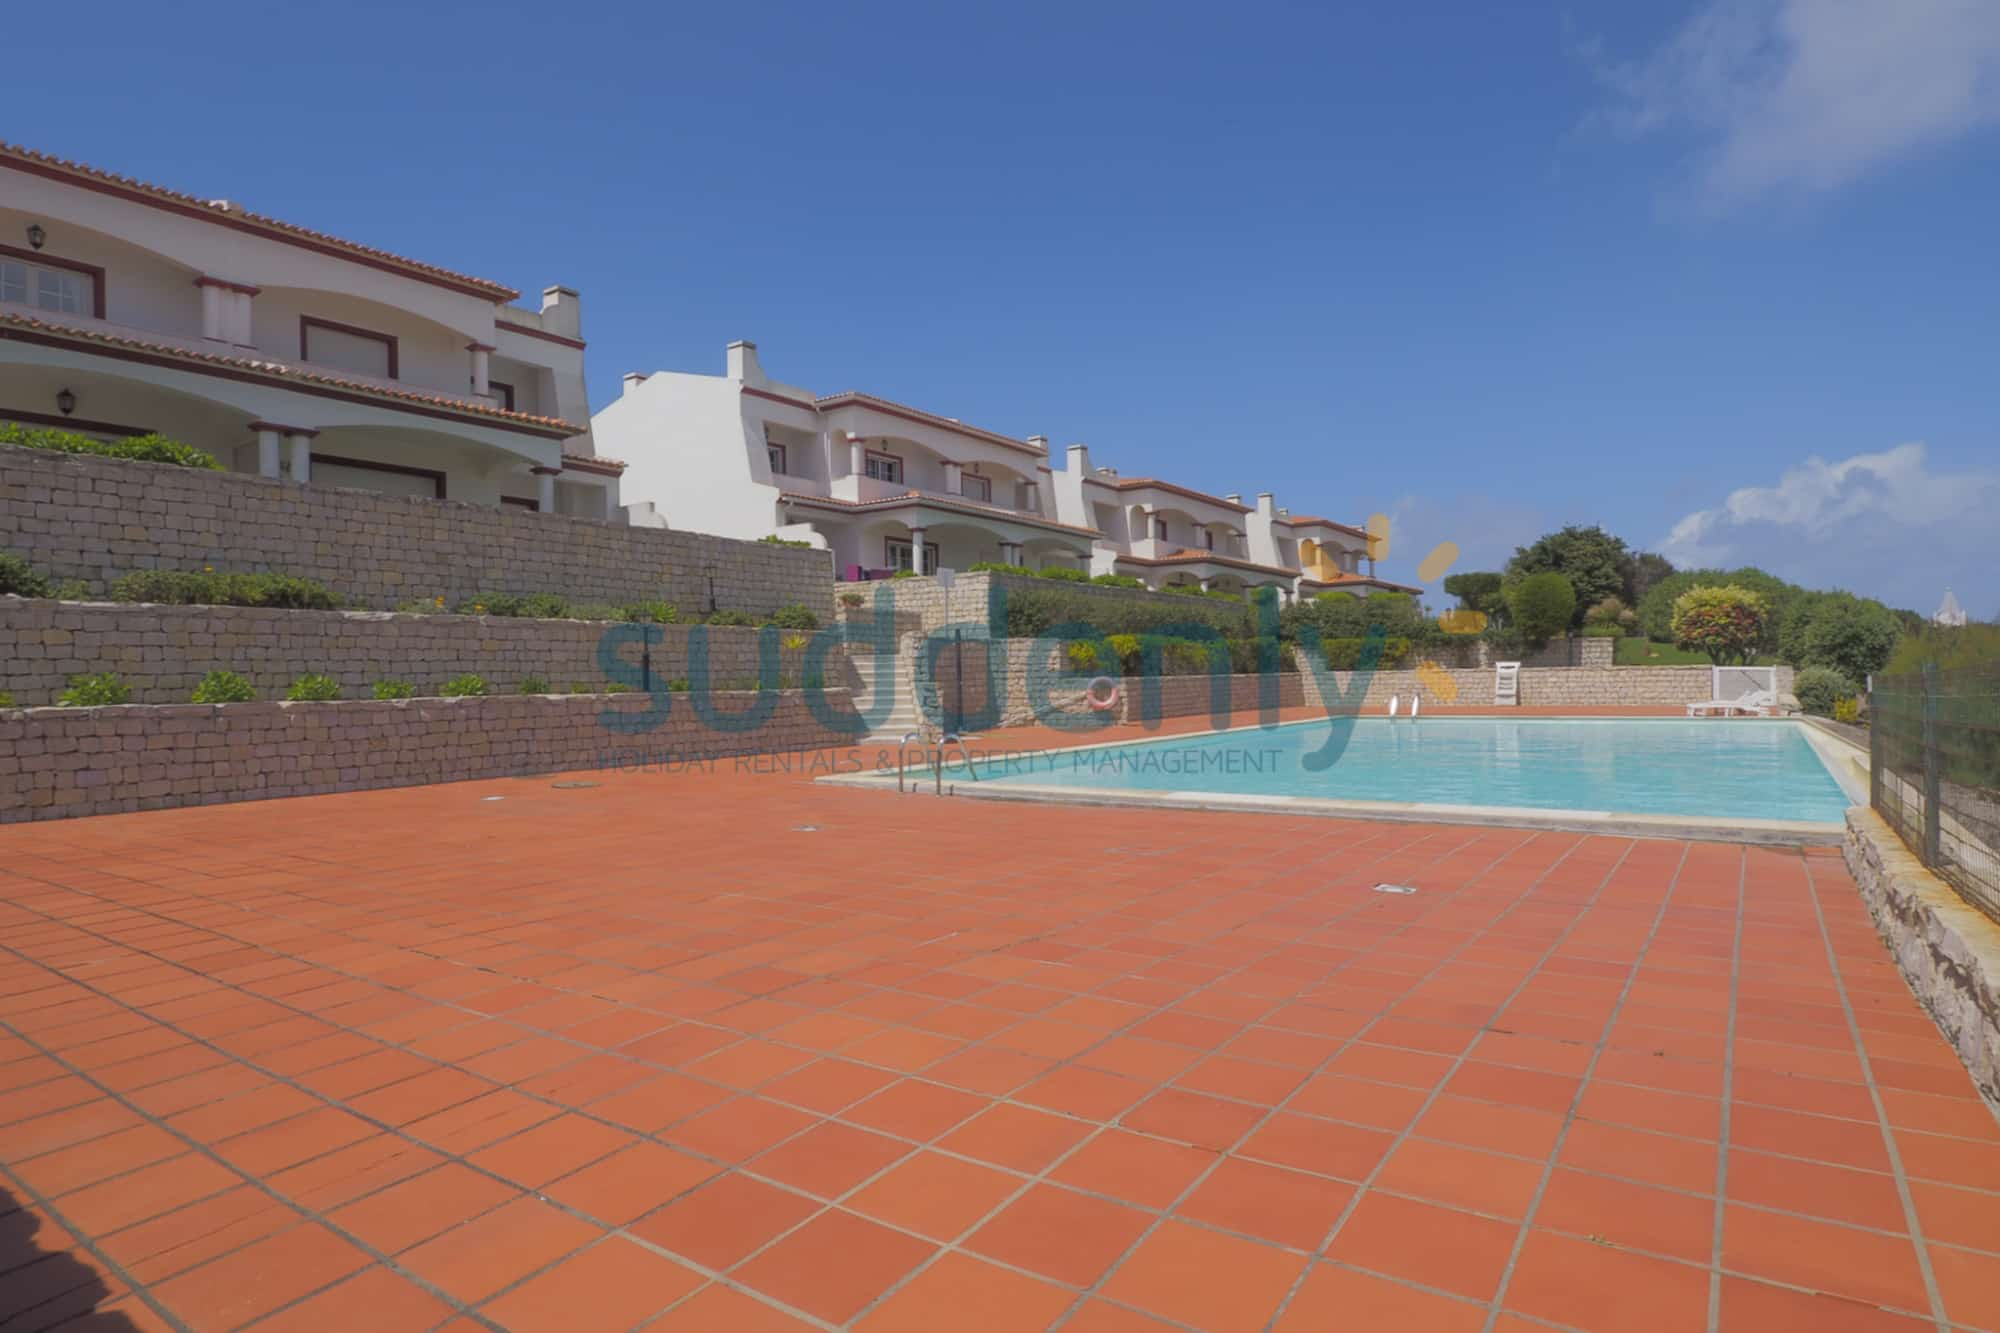 Holiday Rentals in Praia D'El Rey 252